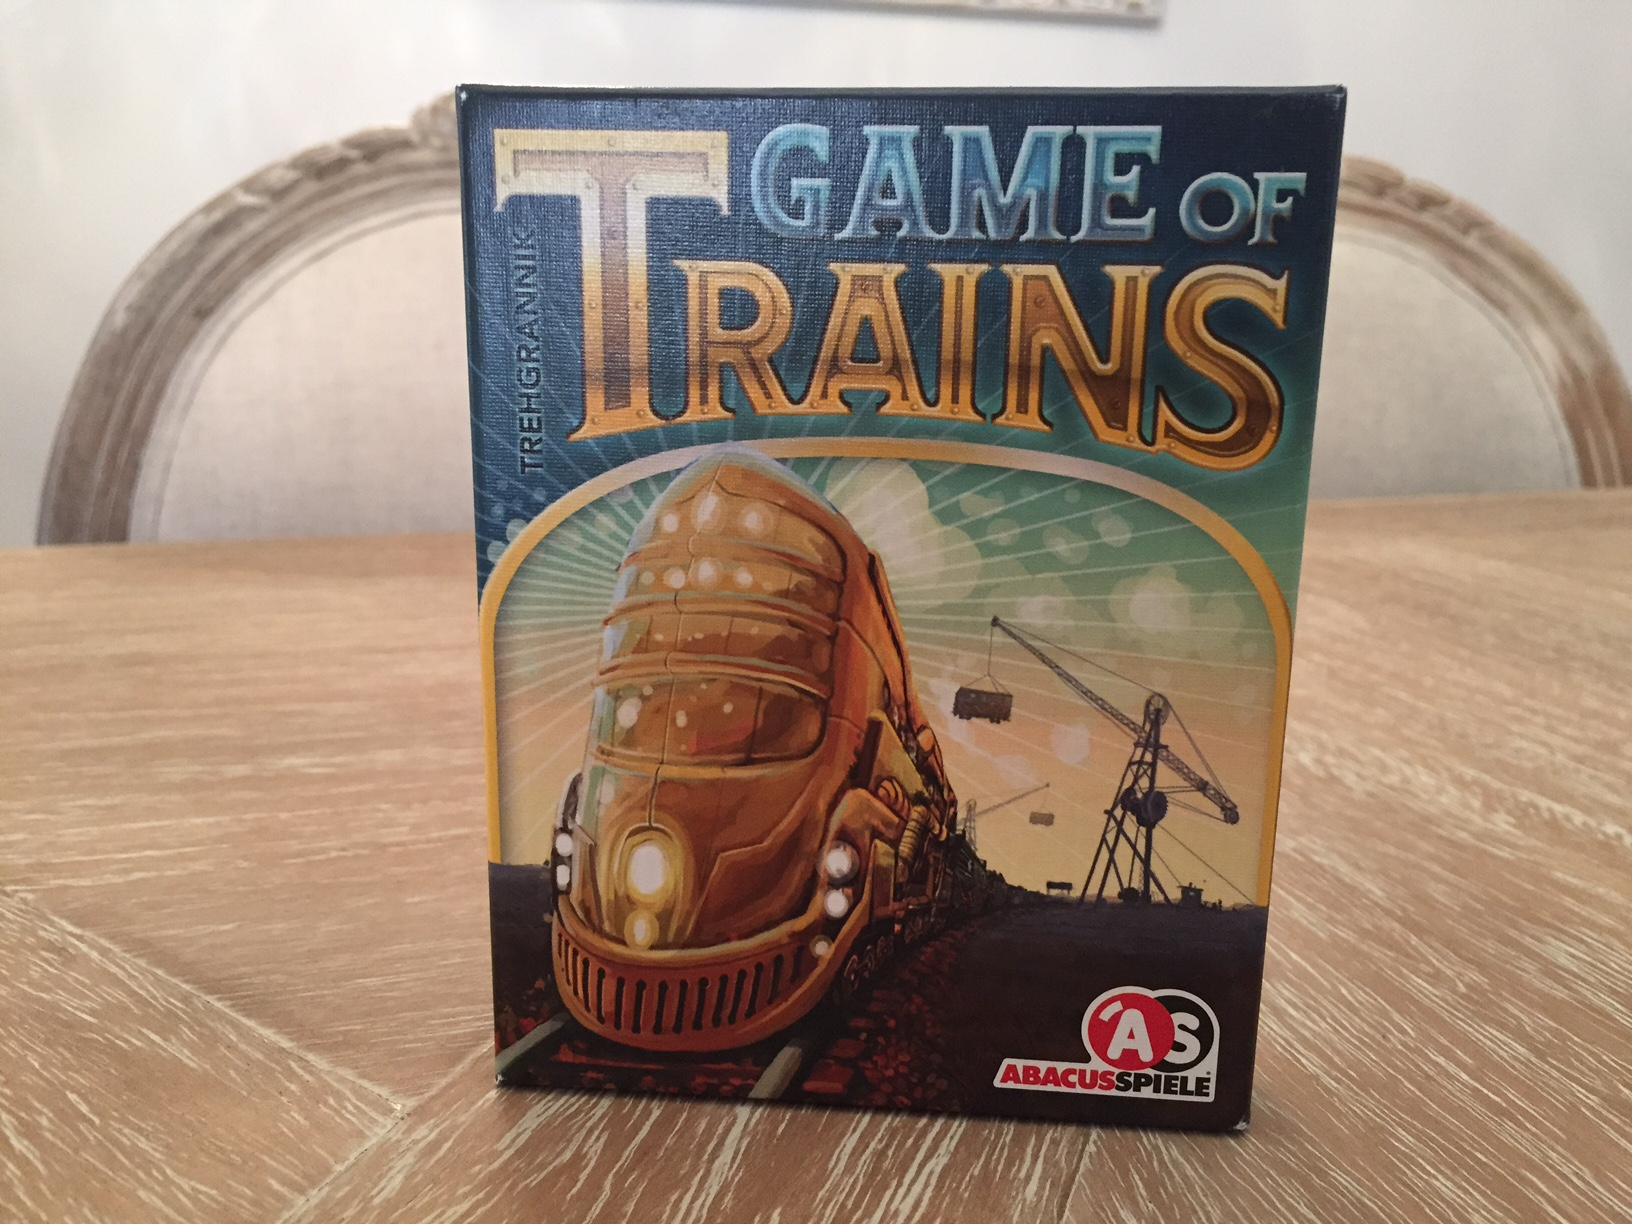 Hoy descubrimos… Game of Trains